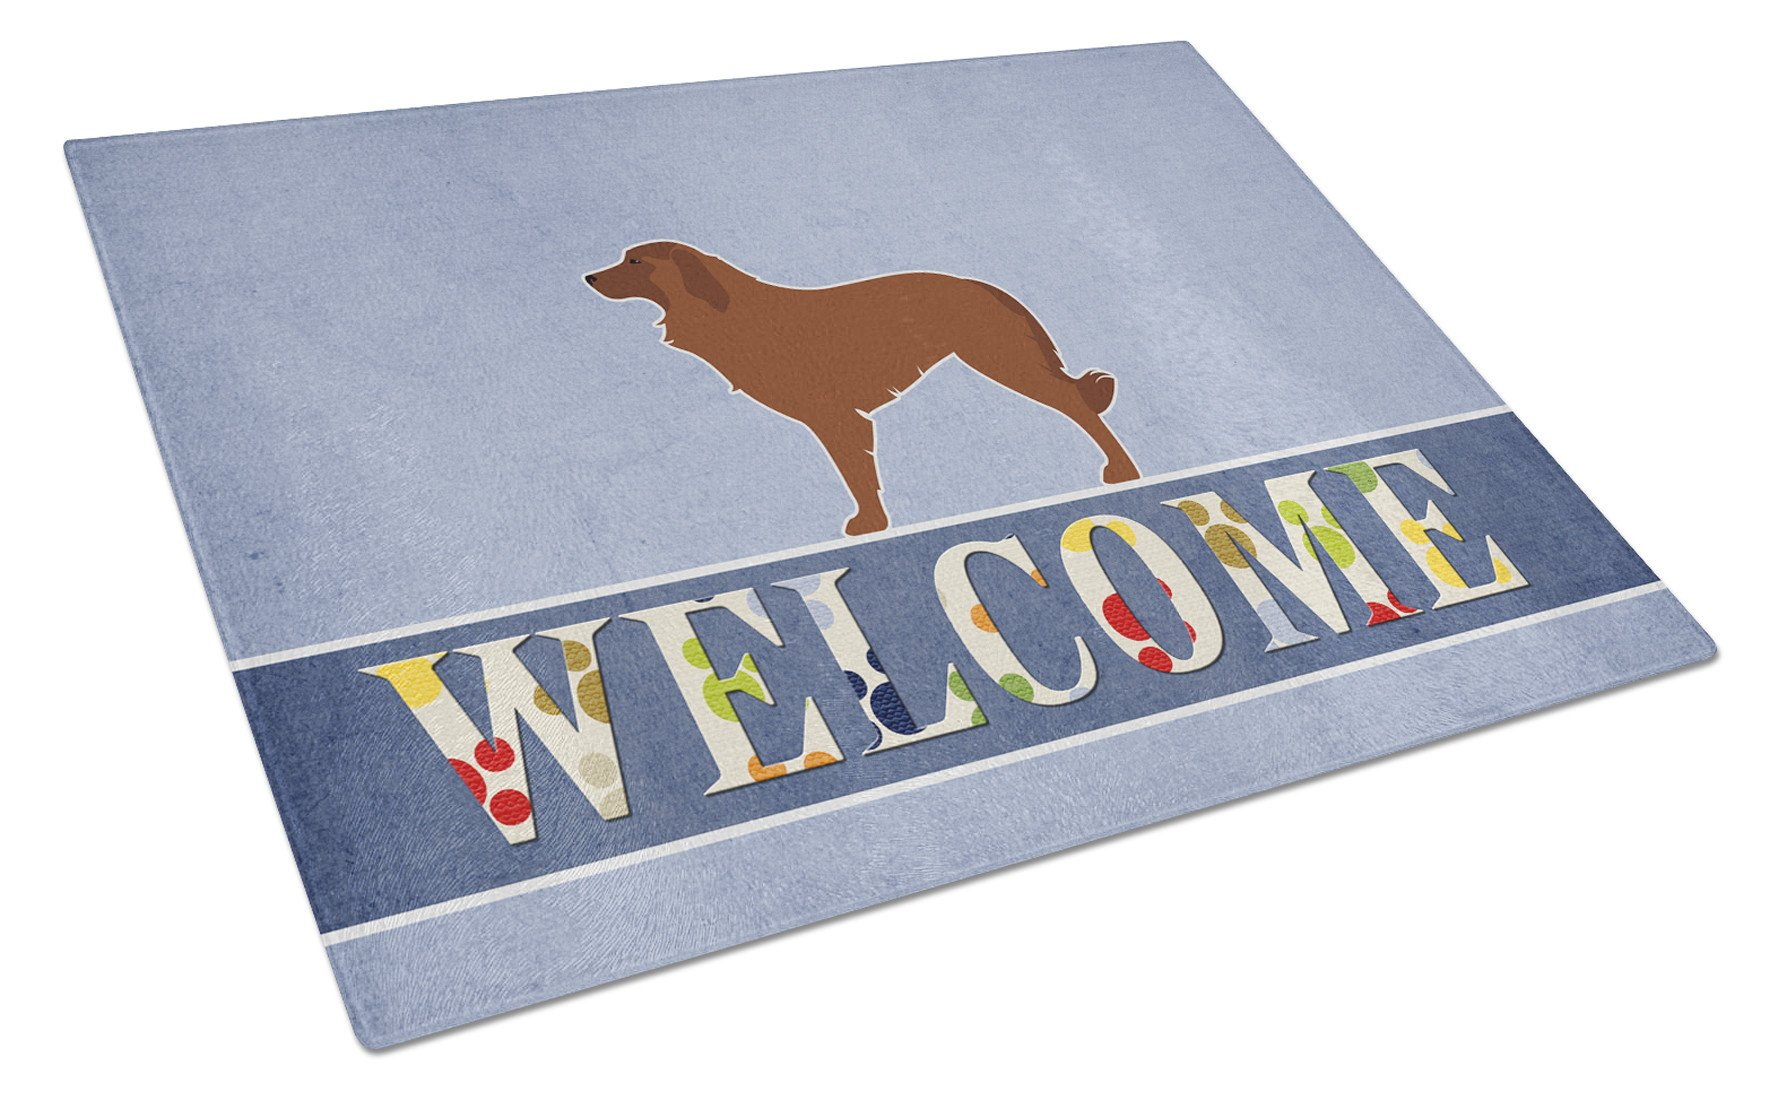 Portuguese Sheepdog Dog Welcome Glass Cutting Board Large BB5535LCB by Caroline's Treasures